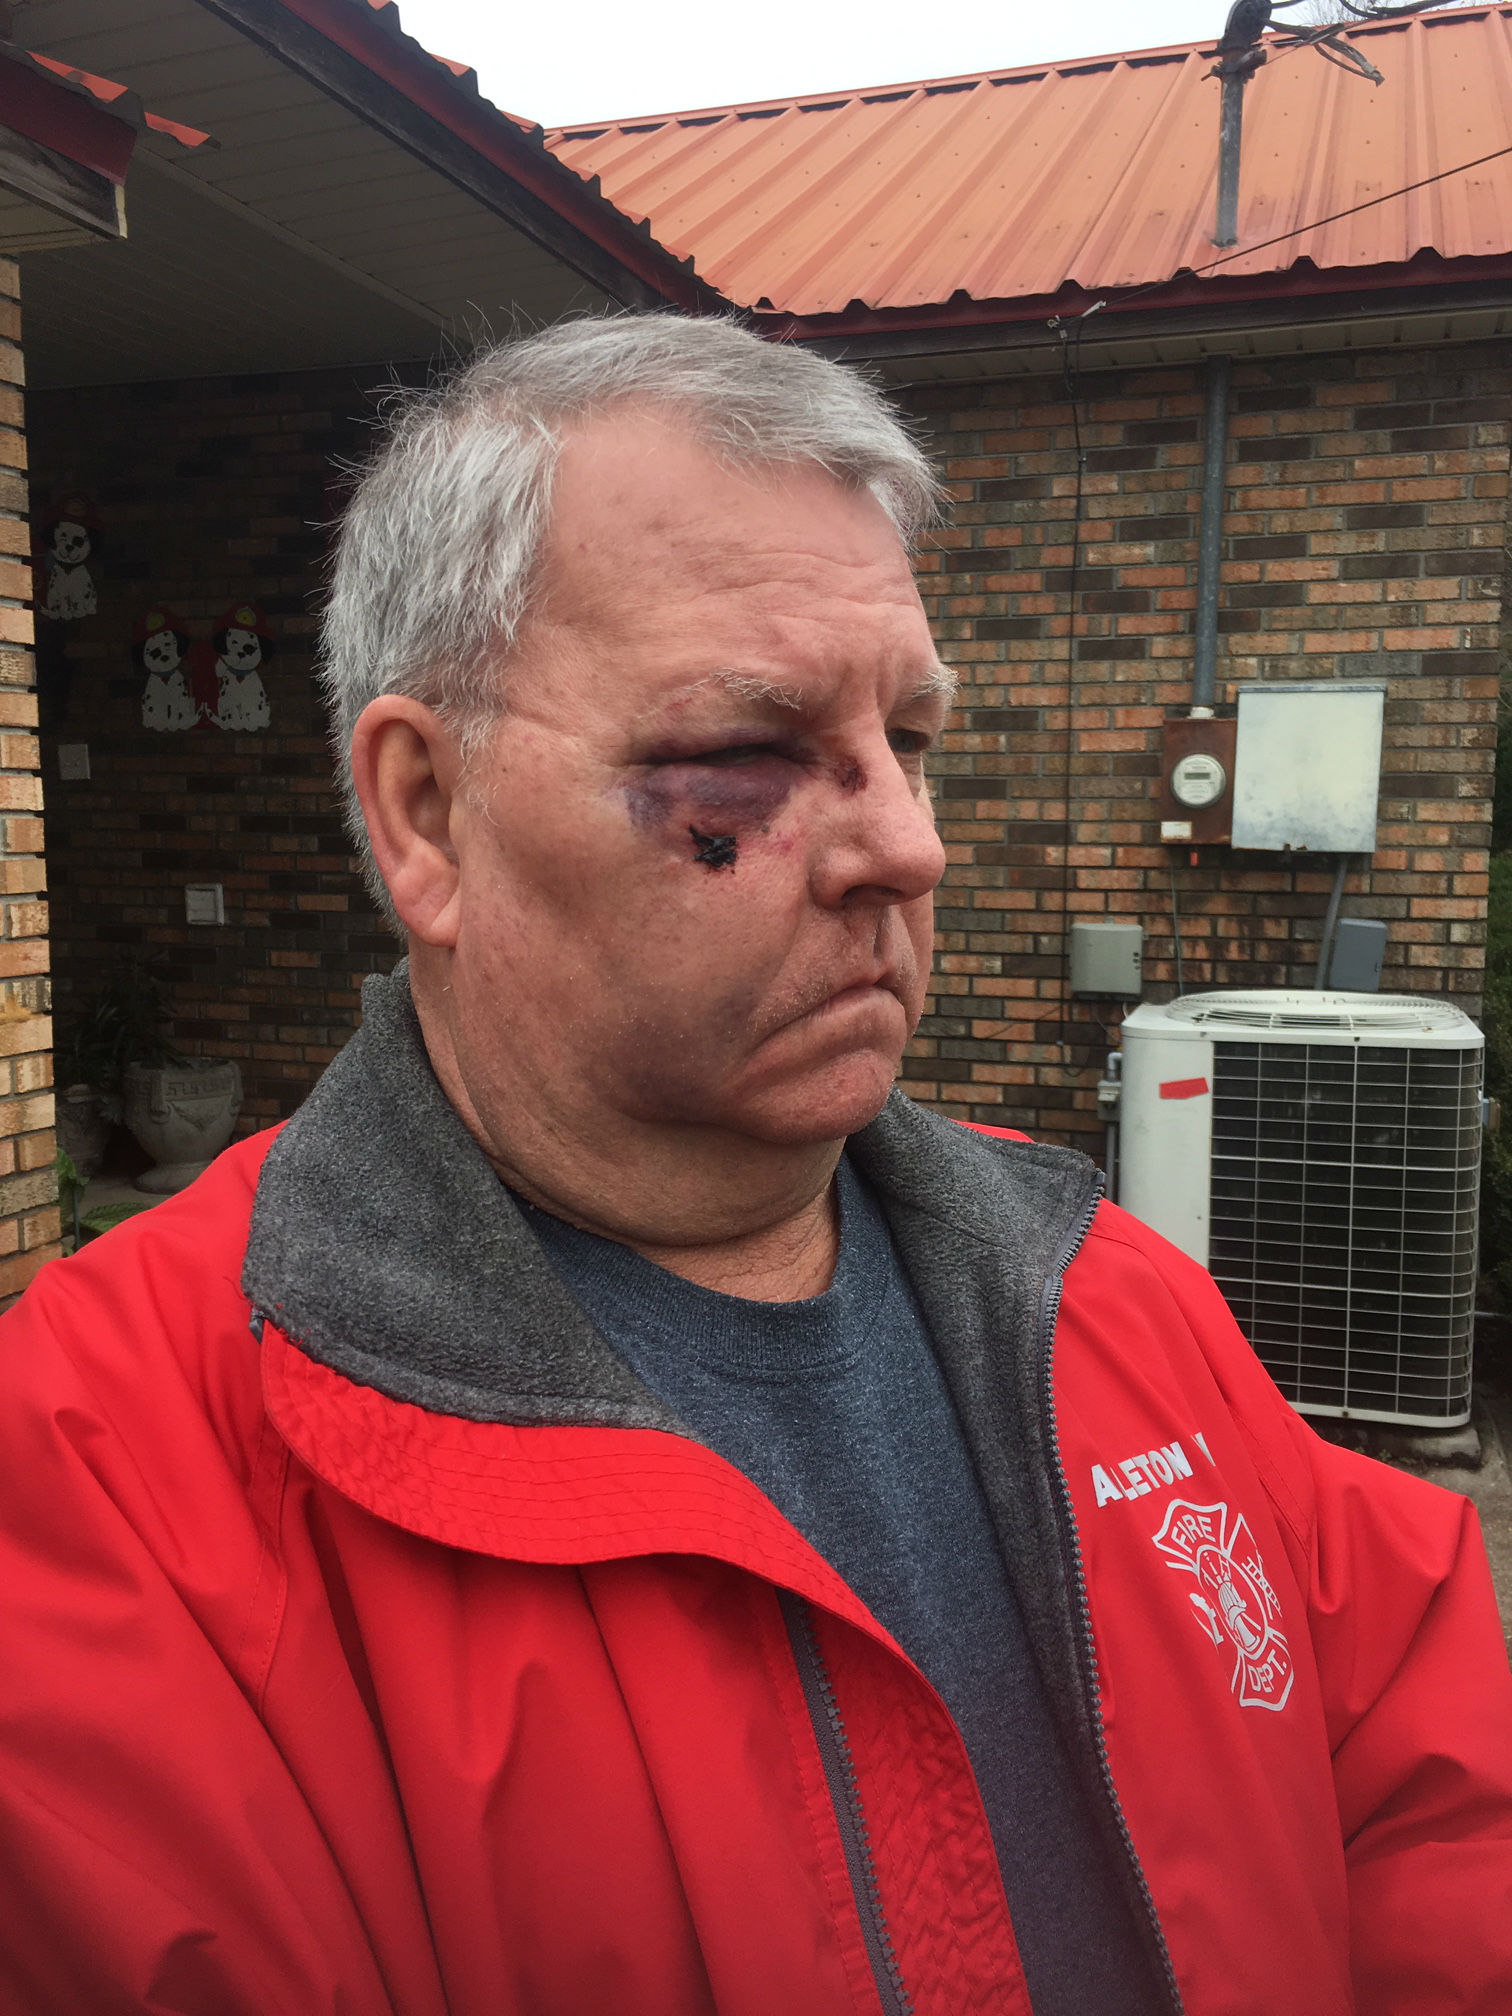 (Image: WPMI) Brewton man Christopher Wade Smith allegedly punches Fire Chief trying to rescue wife, strikes firefighter's vehicle